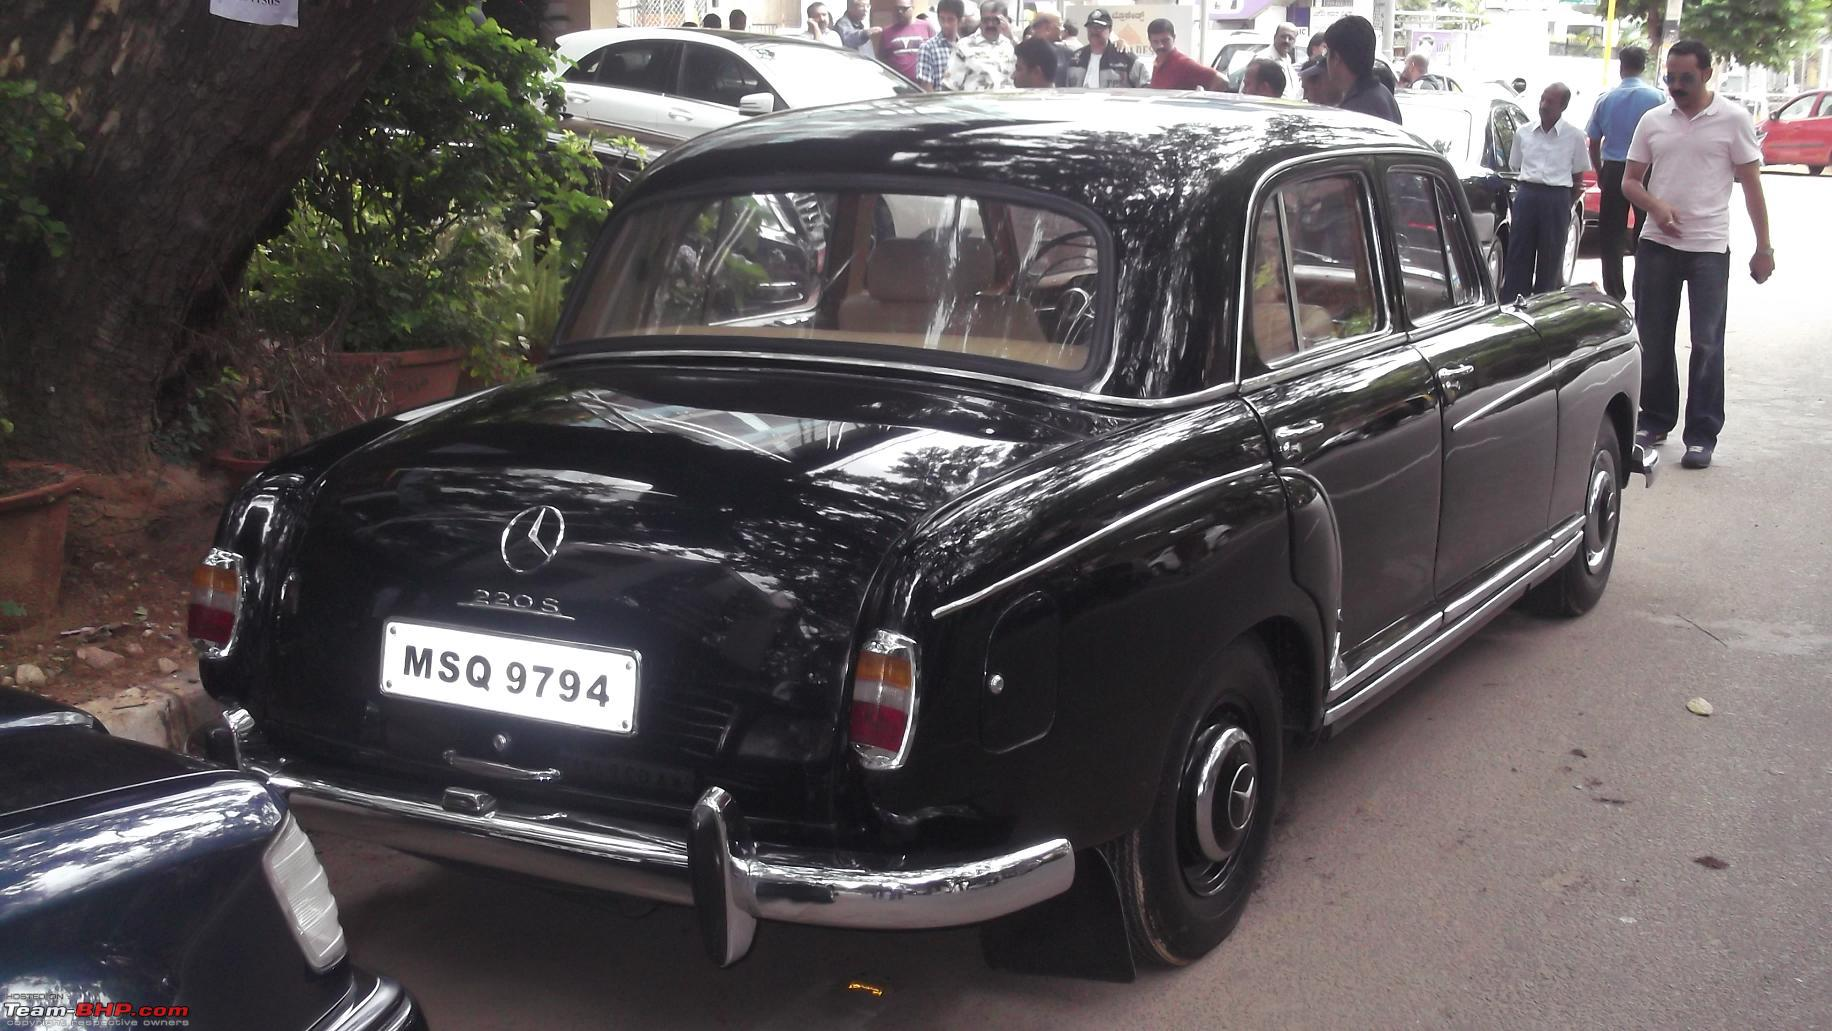 Vintage classic mercedes benz cars in india page 109 for All models of mercedes benz cars in india